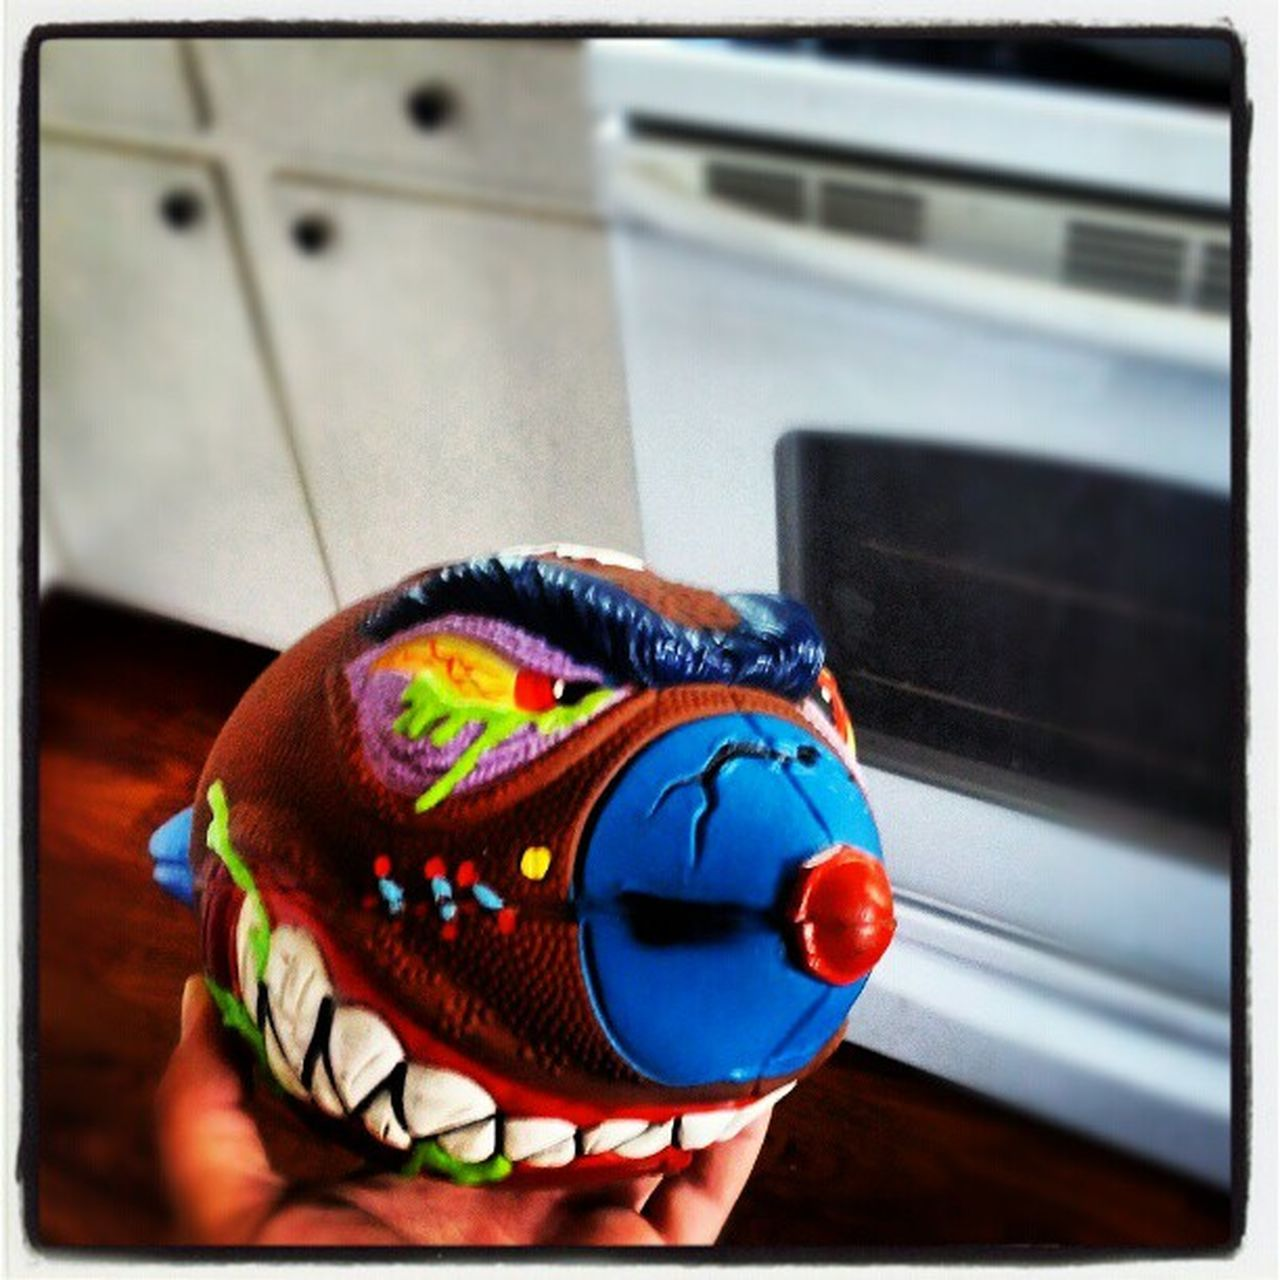 Look what I got in the mail today....talk about a blast from the past....Supermadballs Madballs Touchdownterror